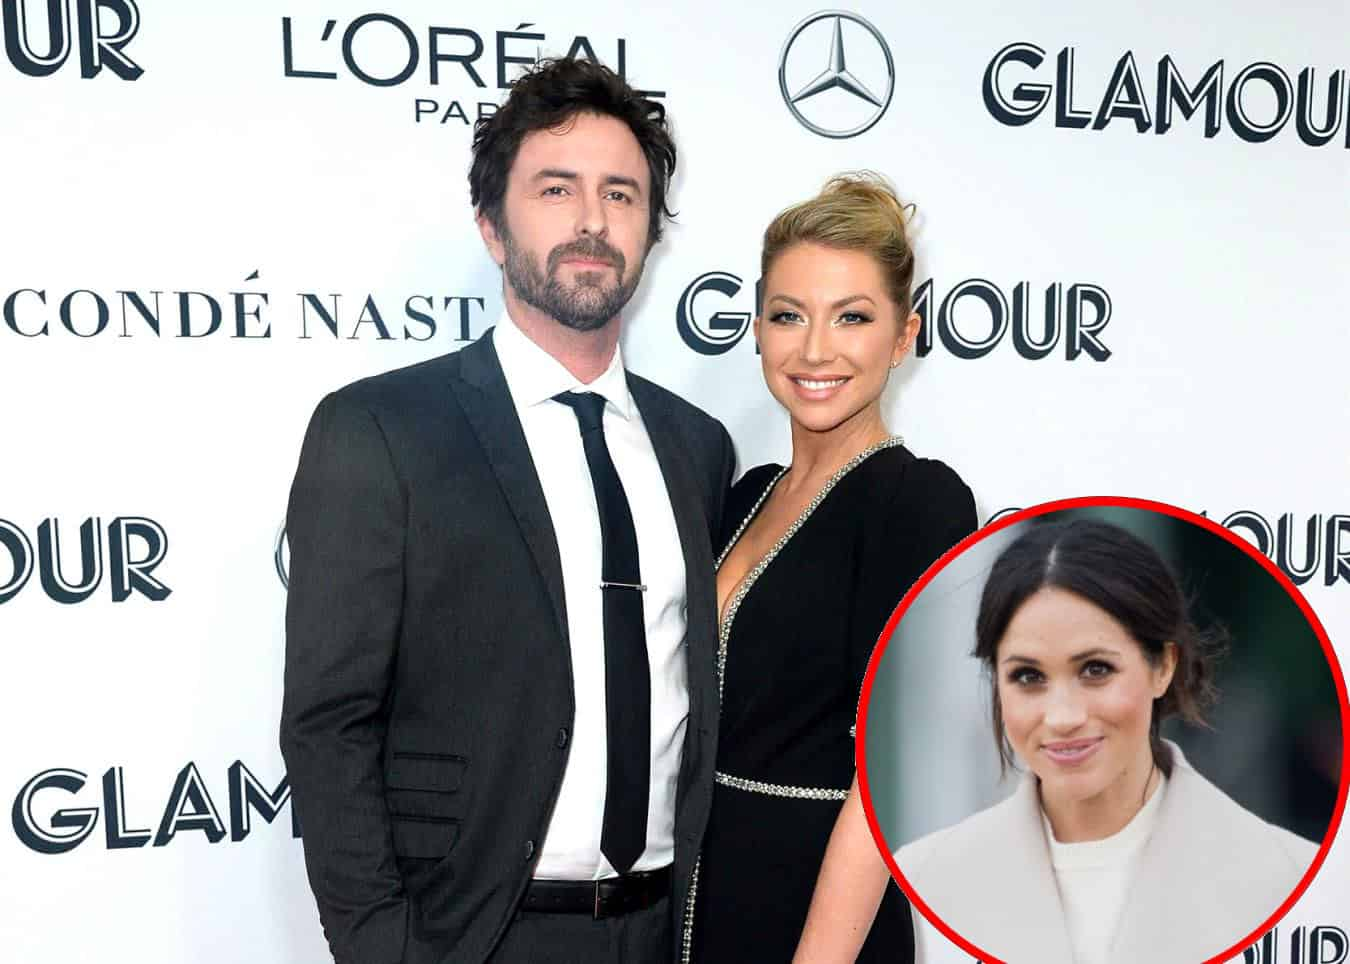 """Ex-Vanderpump Rules Star Stassi Schroeder Shades Bravo for Firing as She Discusses Meghan Markle's Hardships With Piers Morgan and the Royal Family,Plus Why Beau Clark Thinks Prince Harry is a """"D-ck"""""""